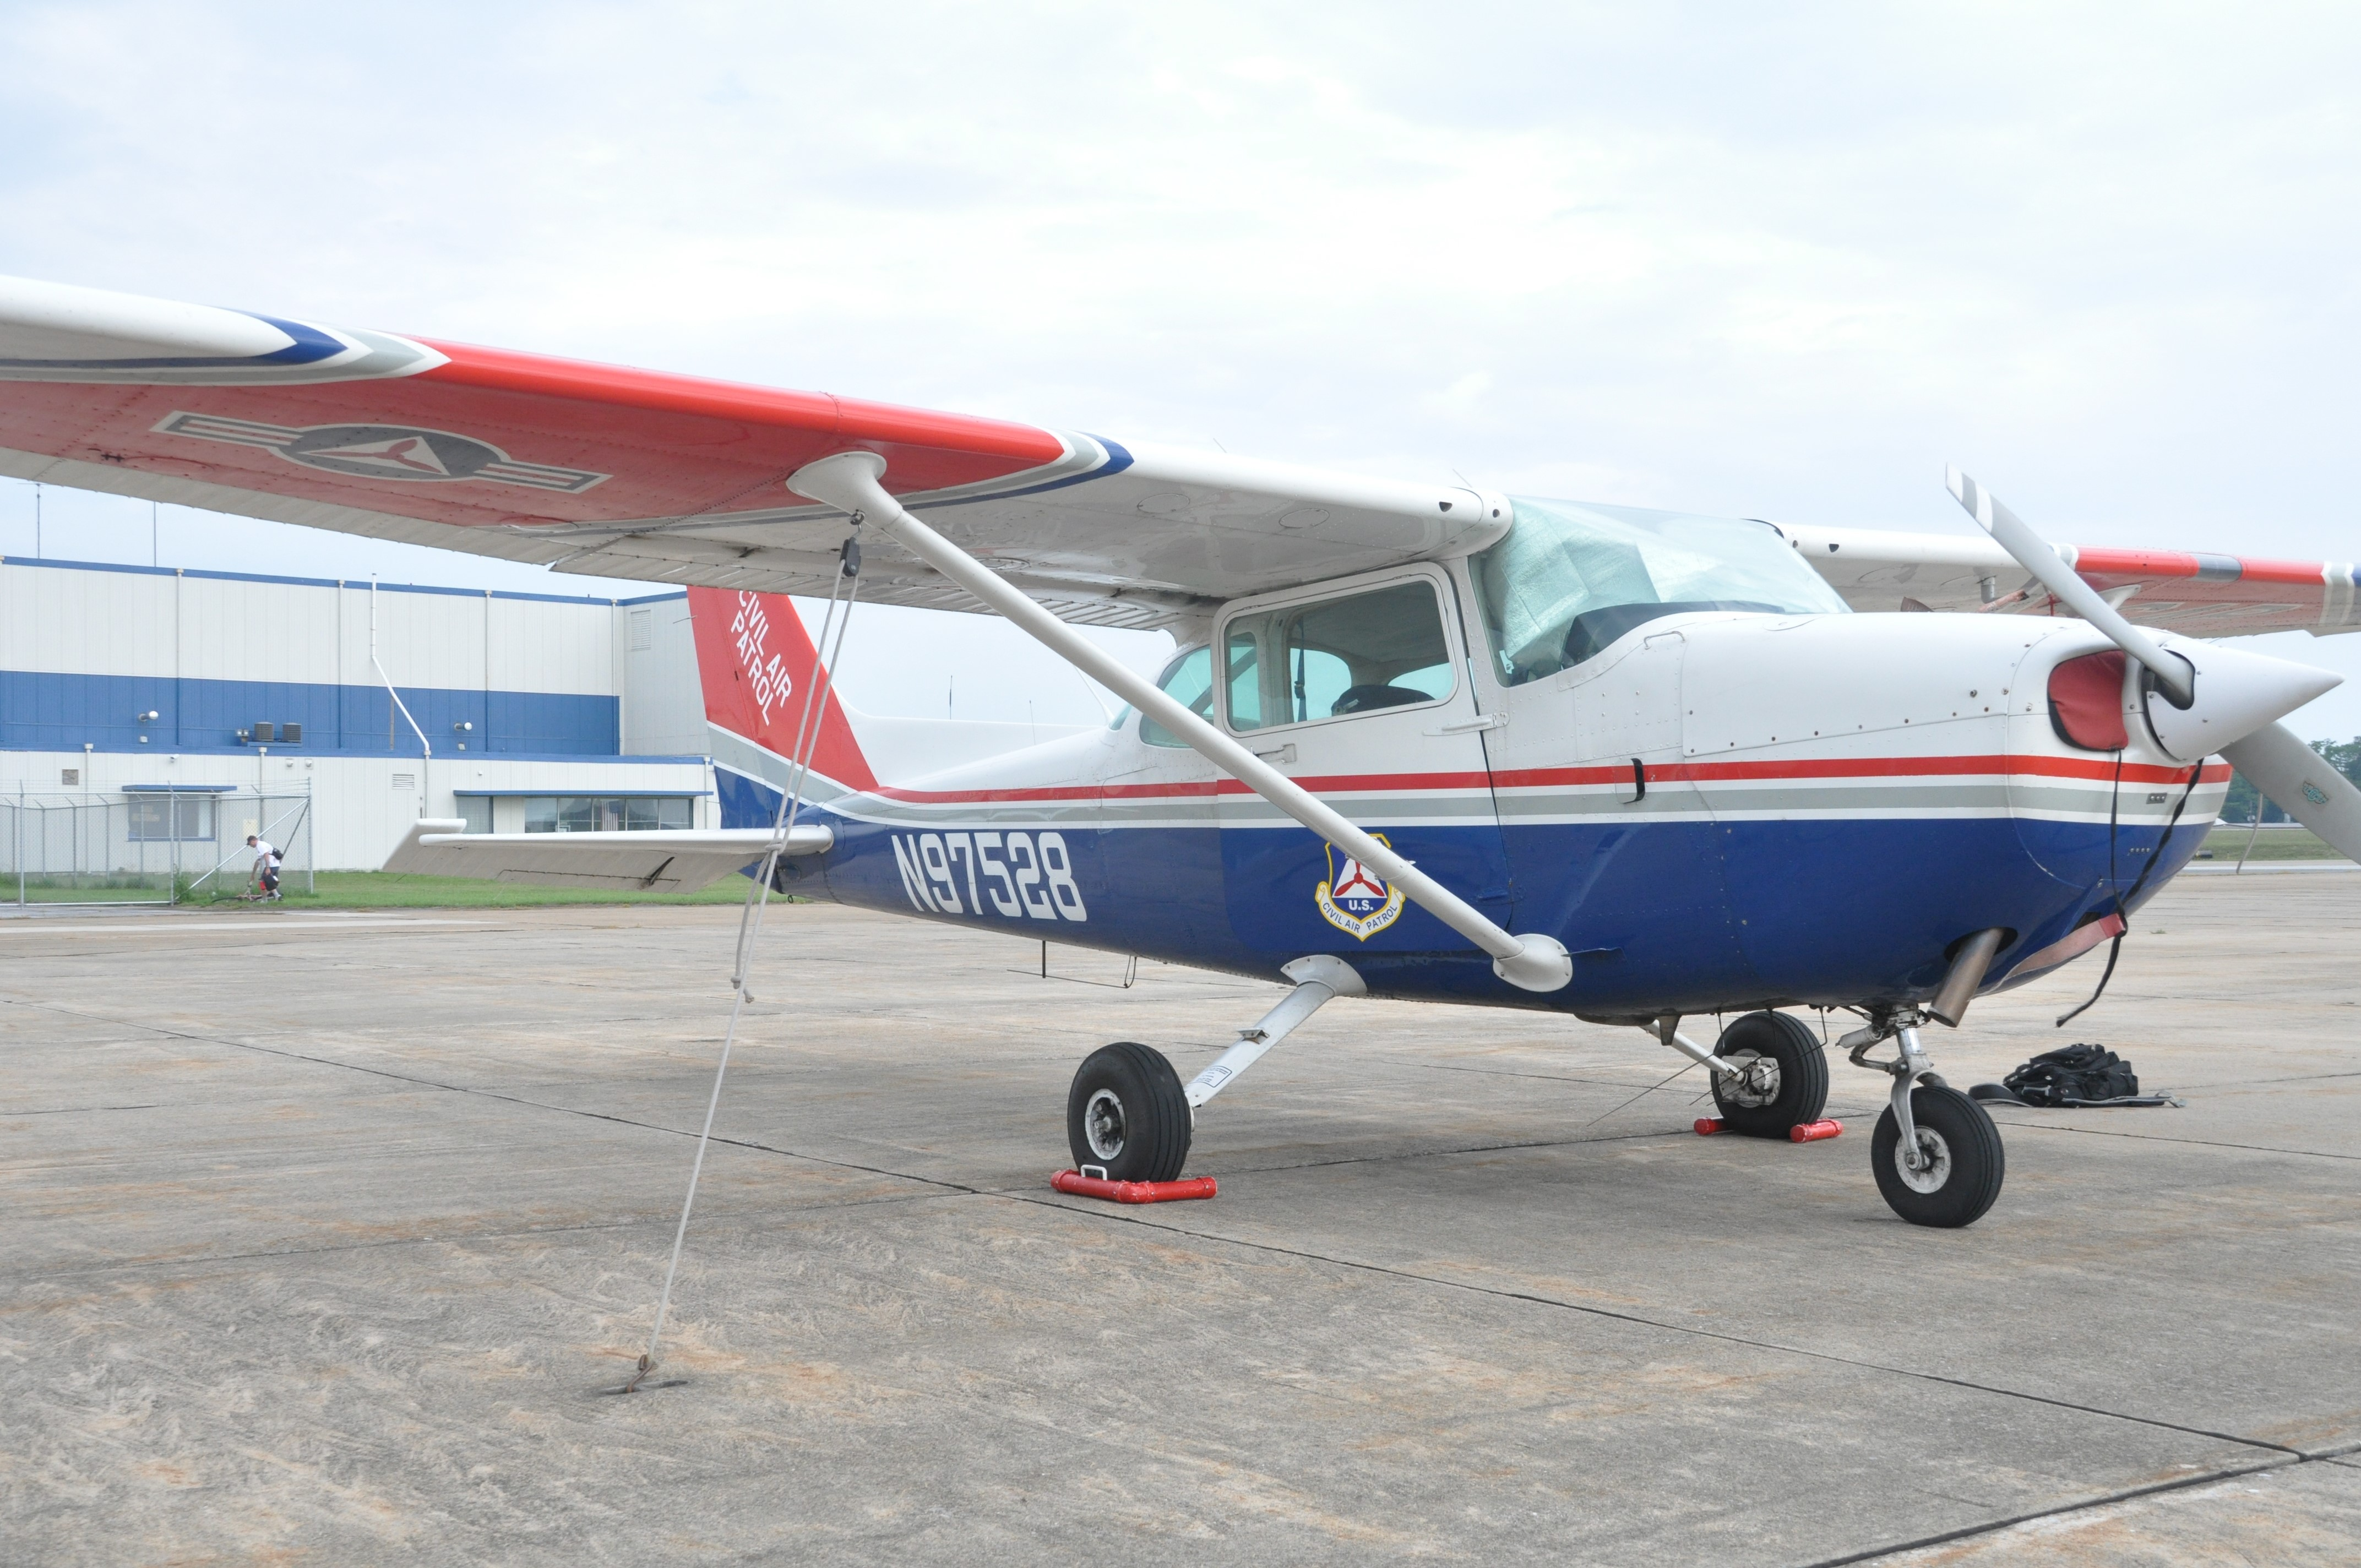 Aircraft for Sale | Civil Air Patrol National Headquarters